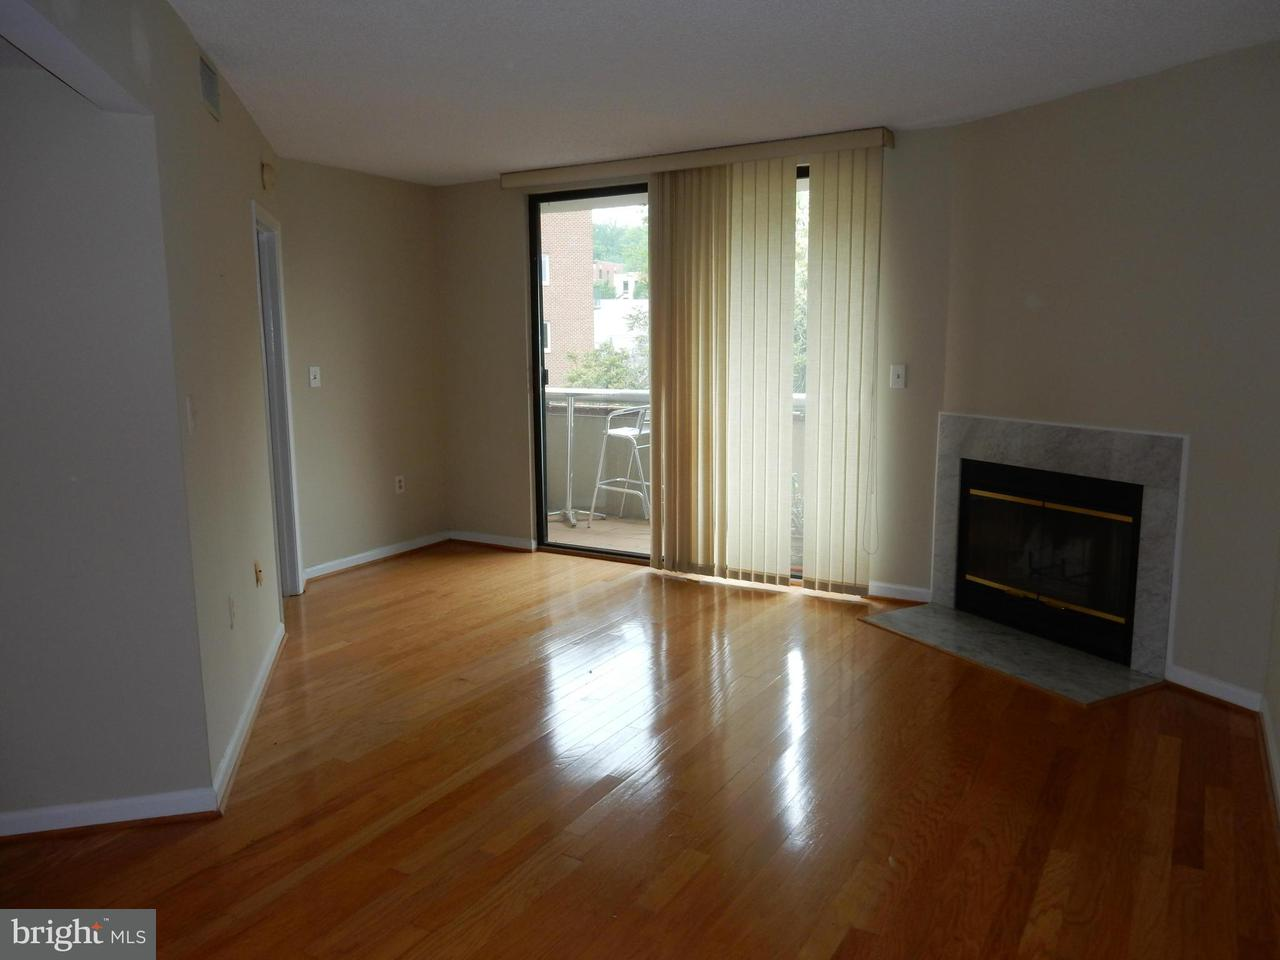 Additional photo for property listing at 2725 Connecticut Ave NW #408  Washington, District Of Columbia 20008 United States